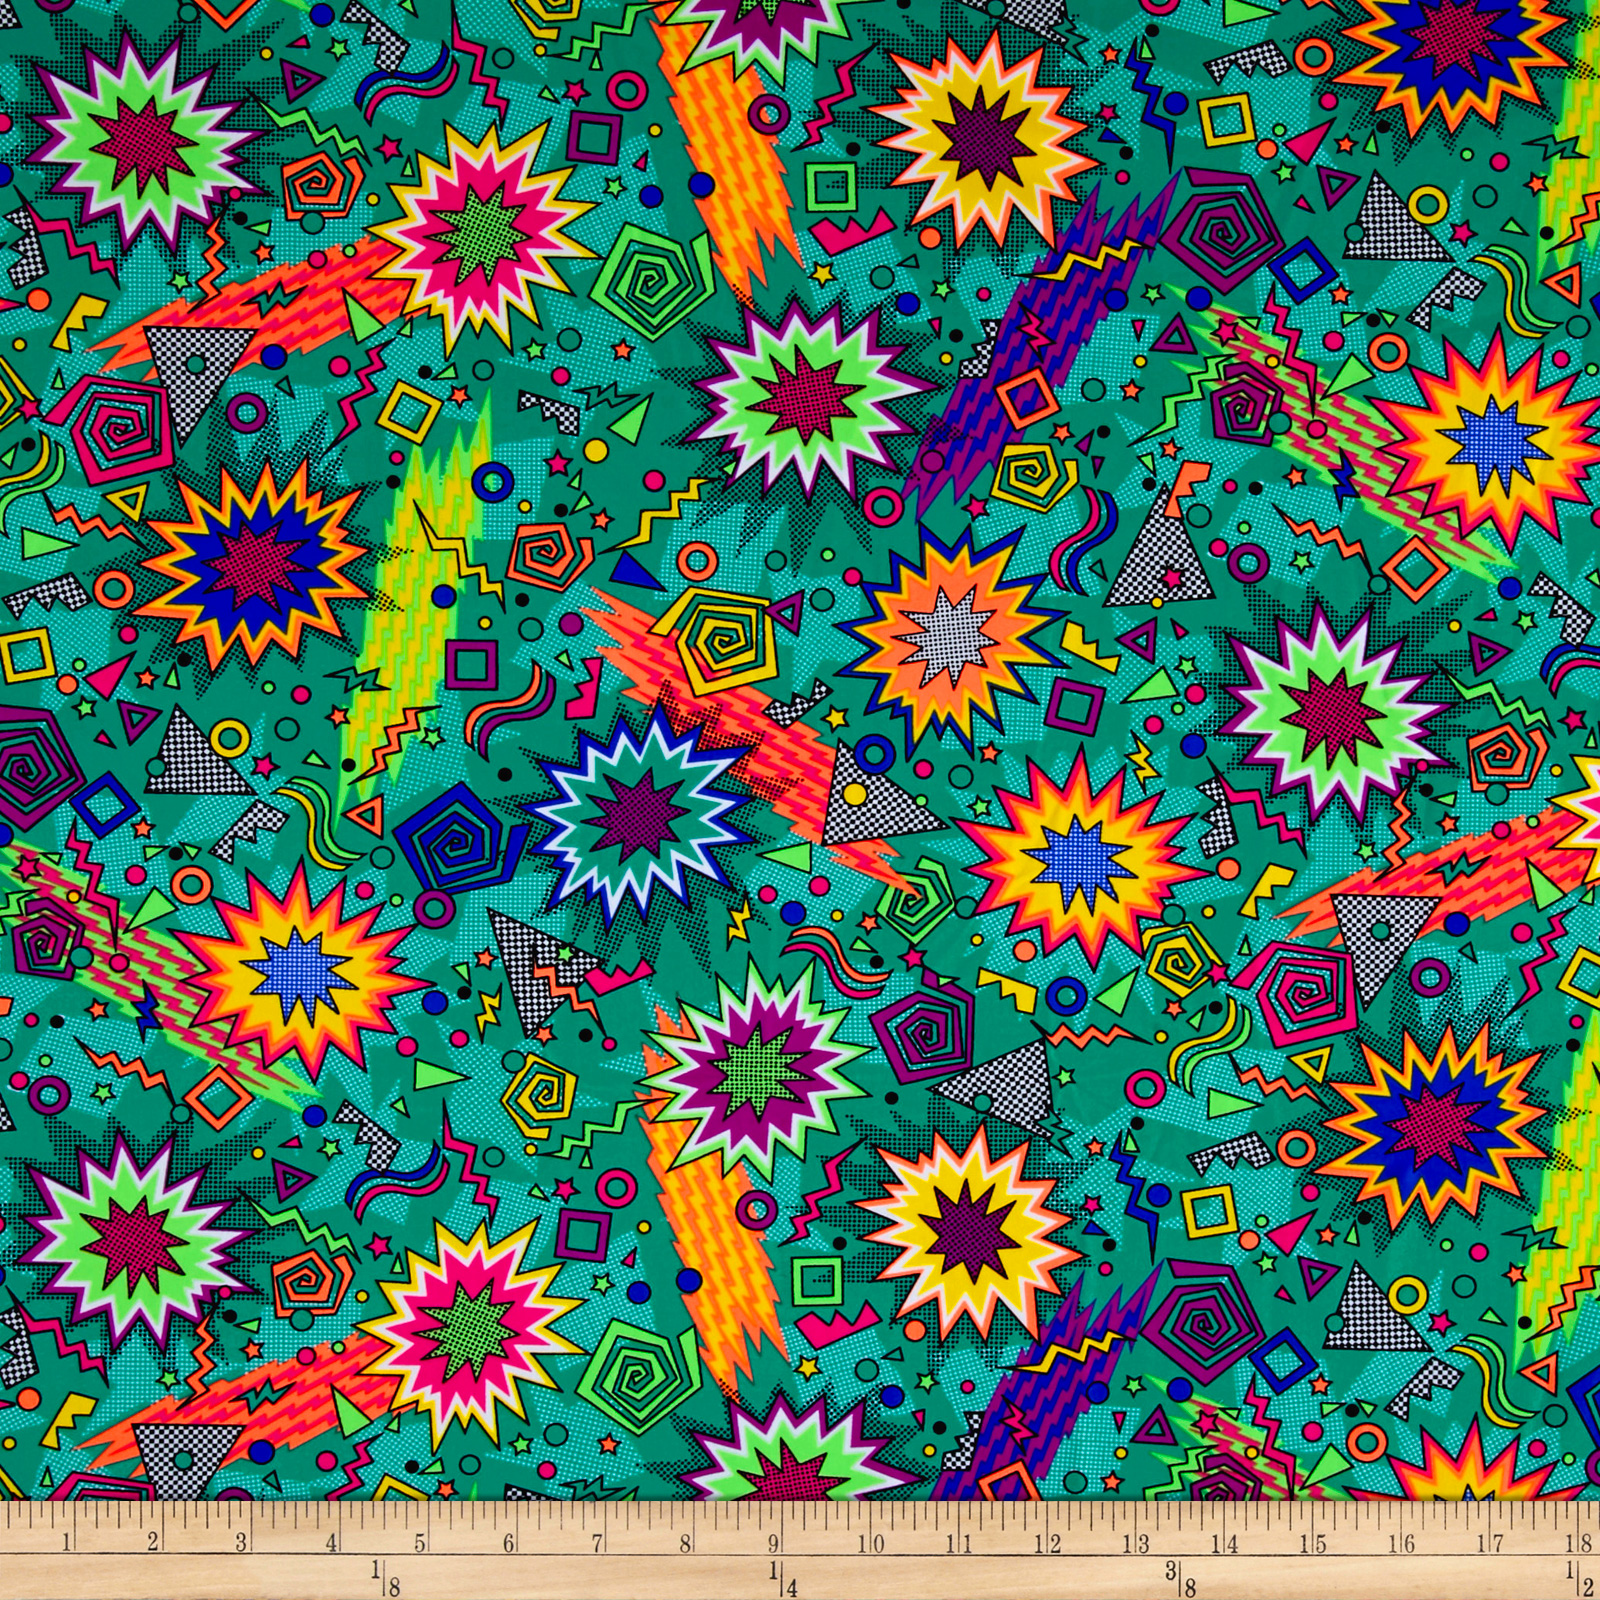 Pine Crest Fabrics Zack Attack Printed Athletic Knit Teal 0539712